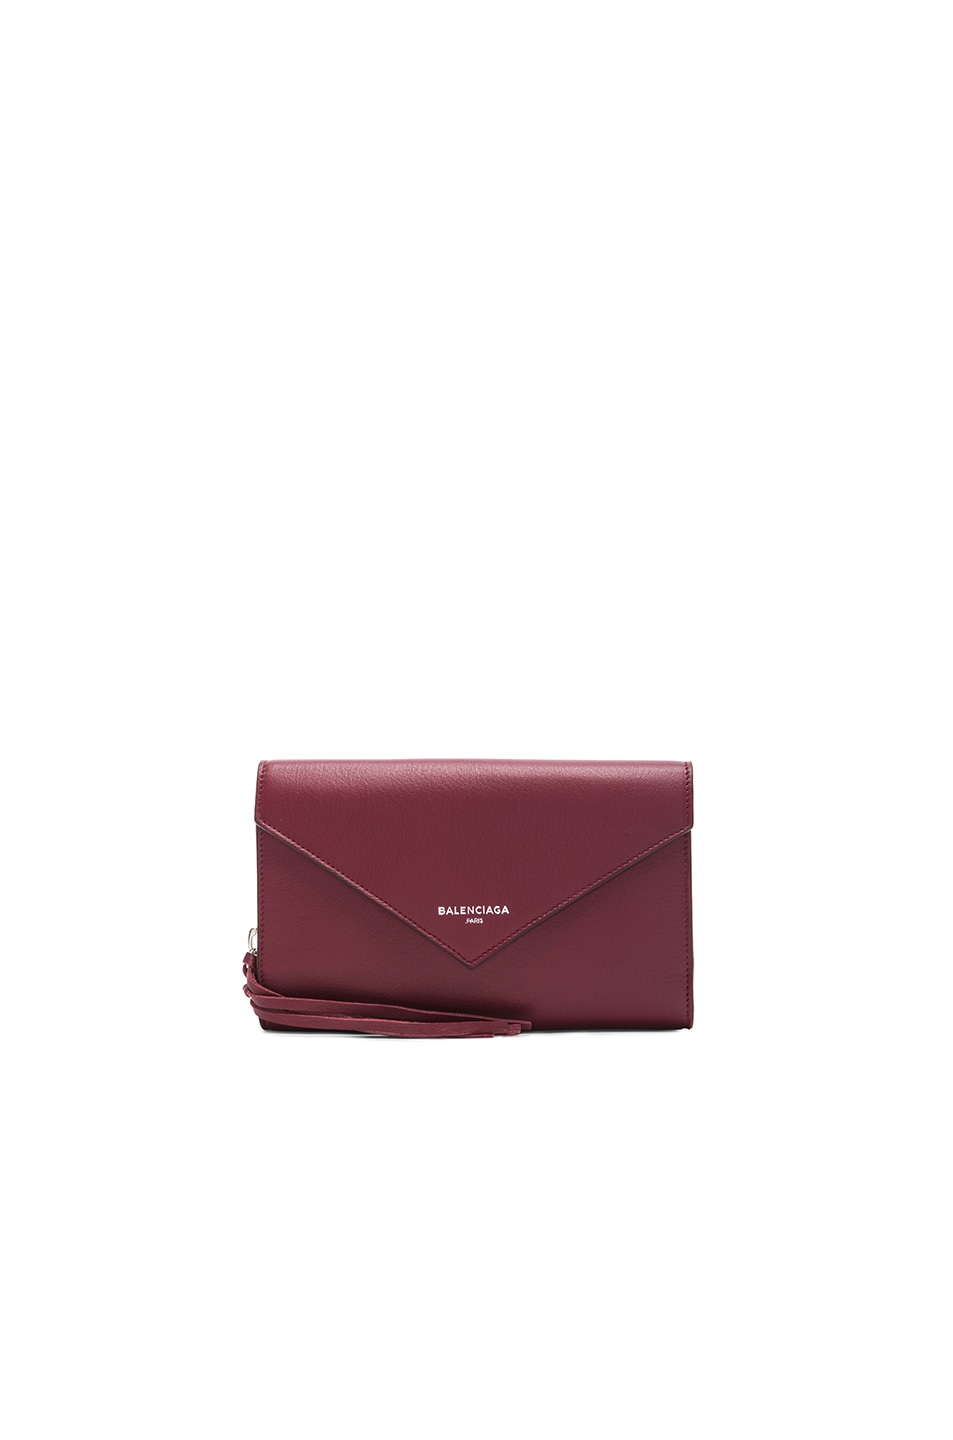 Image 1 of Balenciaga Papier Zip Around Money Wallet in Rouge Pourpre